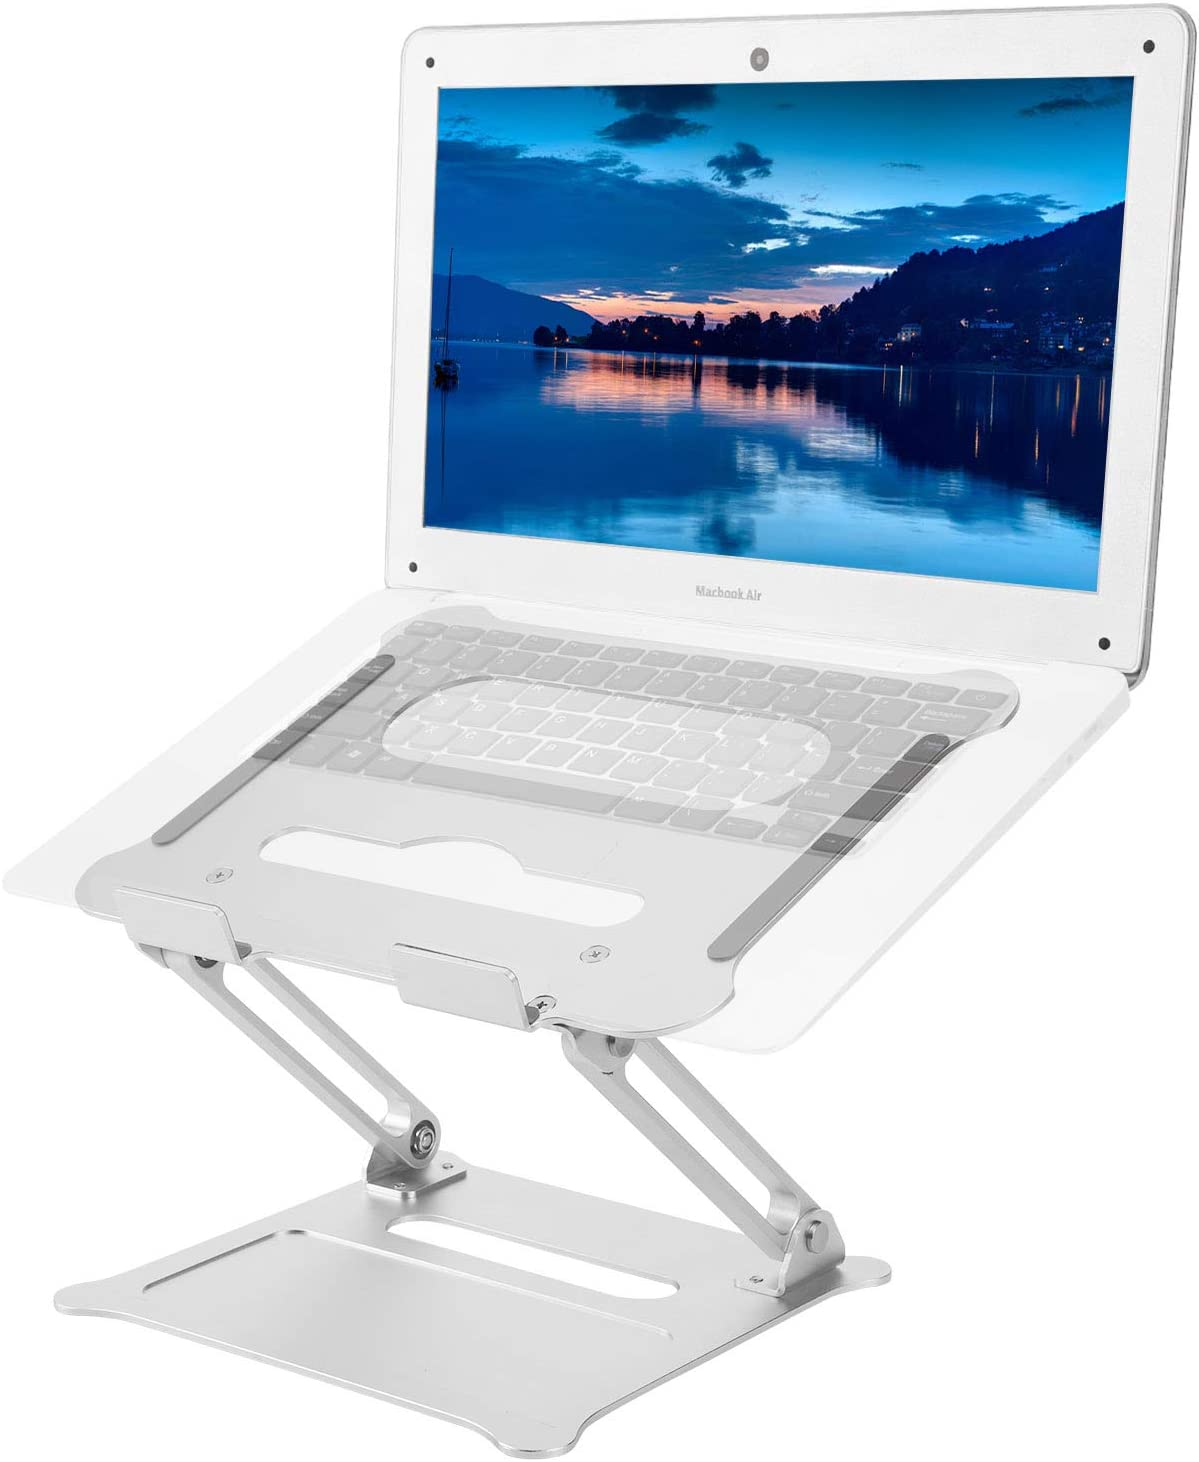 """Laptop Stand Computer Holder Riser Ergonomic Adjustable Portable Aluminum Alloy Laptop Riser Foldable Notebook Stand Compatible with MacBook Air Pro More 10-15.6/"""" Laptops and Tablets Lenovo Dell"""